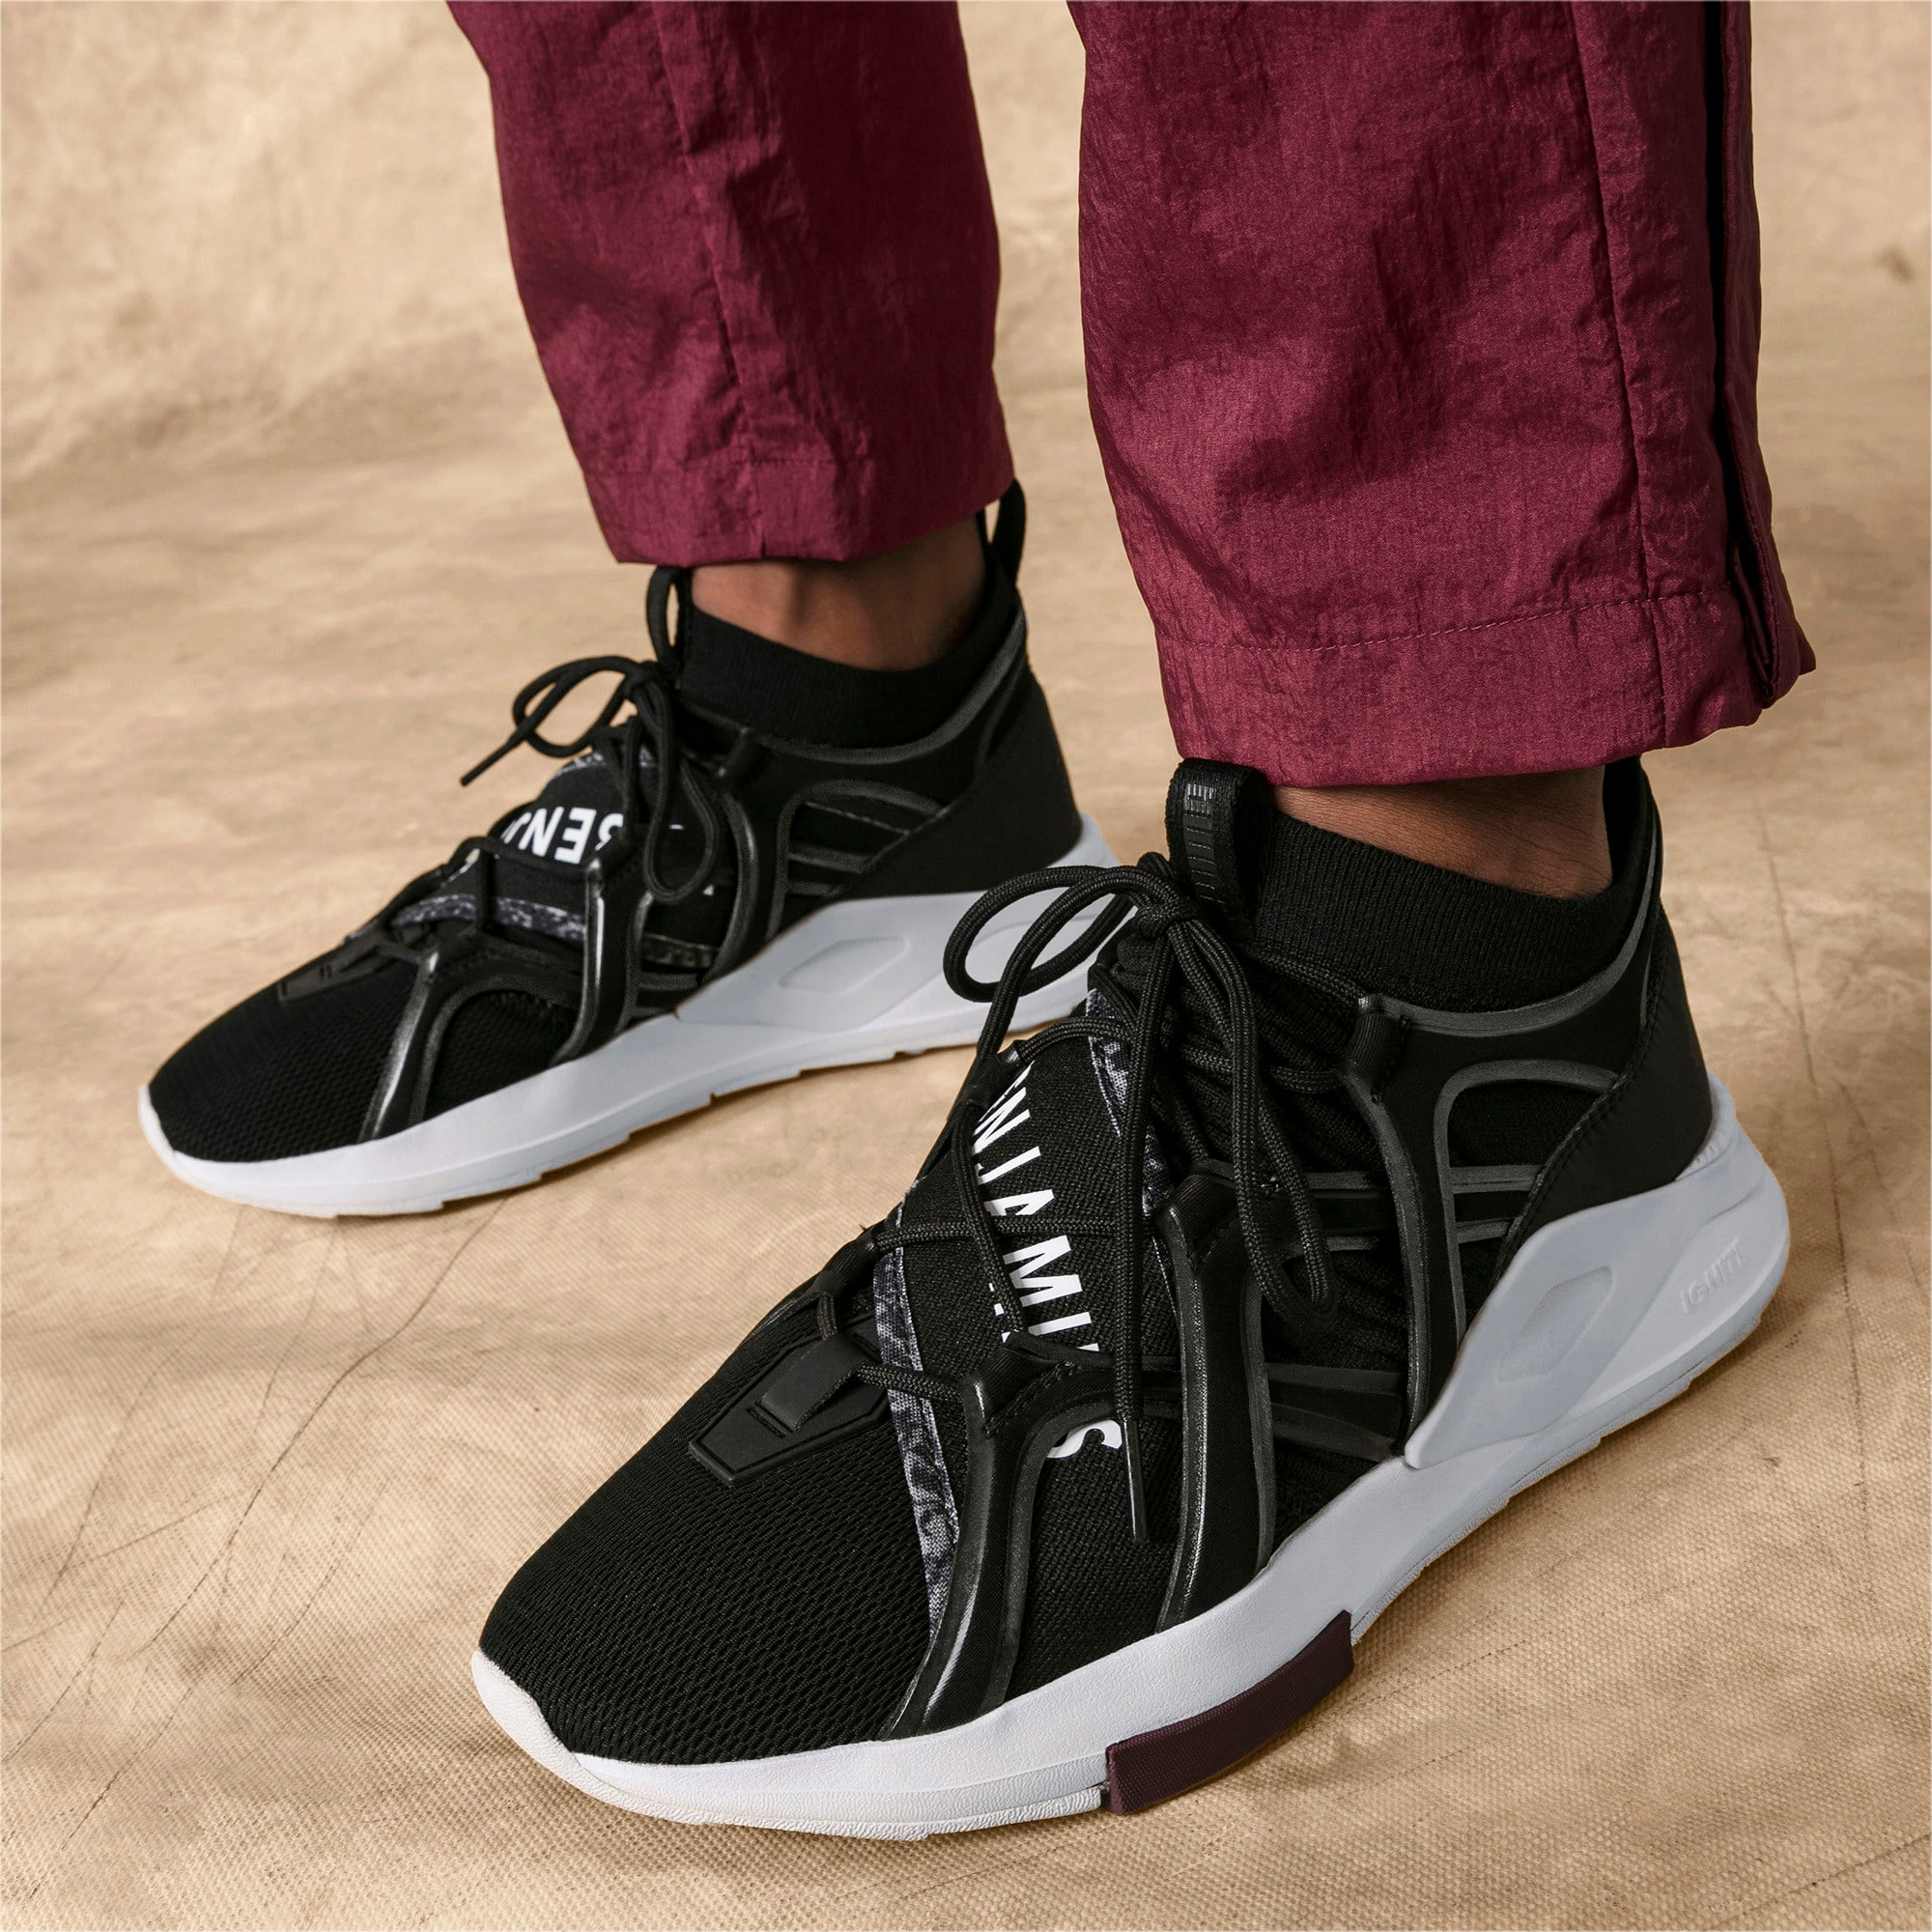 Thumbnail 2 of PUMA x LES BENJAMINS SHOKU Sneakers, Puma Black, medium